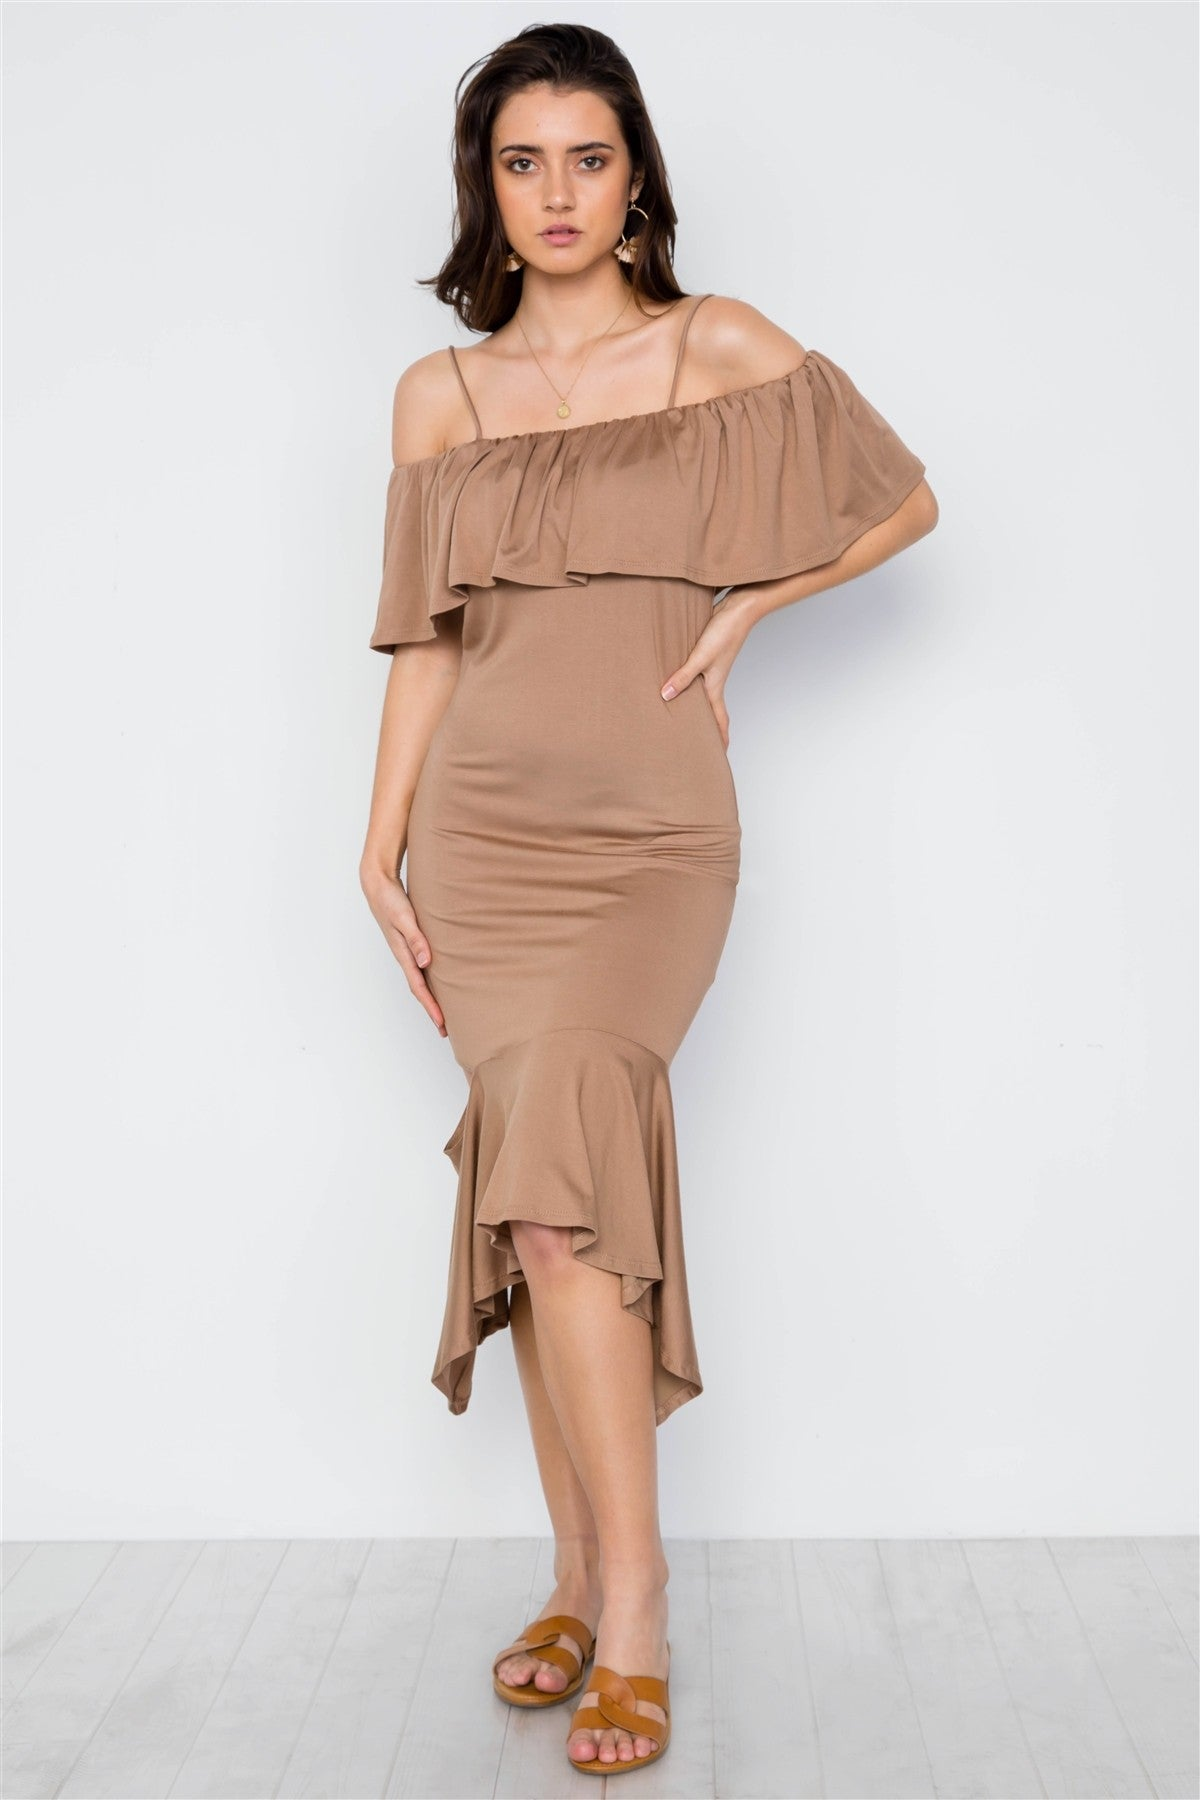 Stylish Mocha Flounce Cut Dress